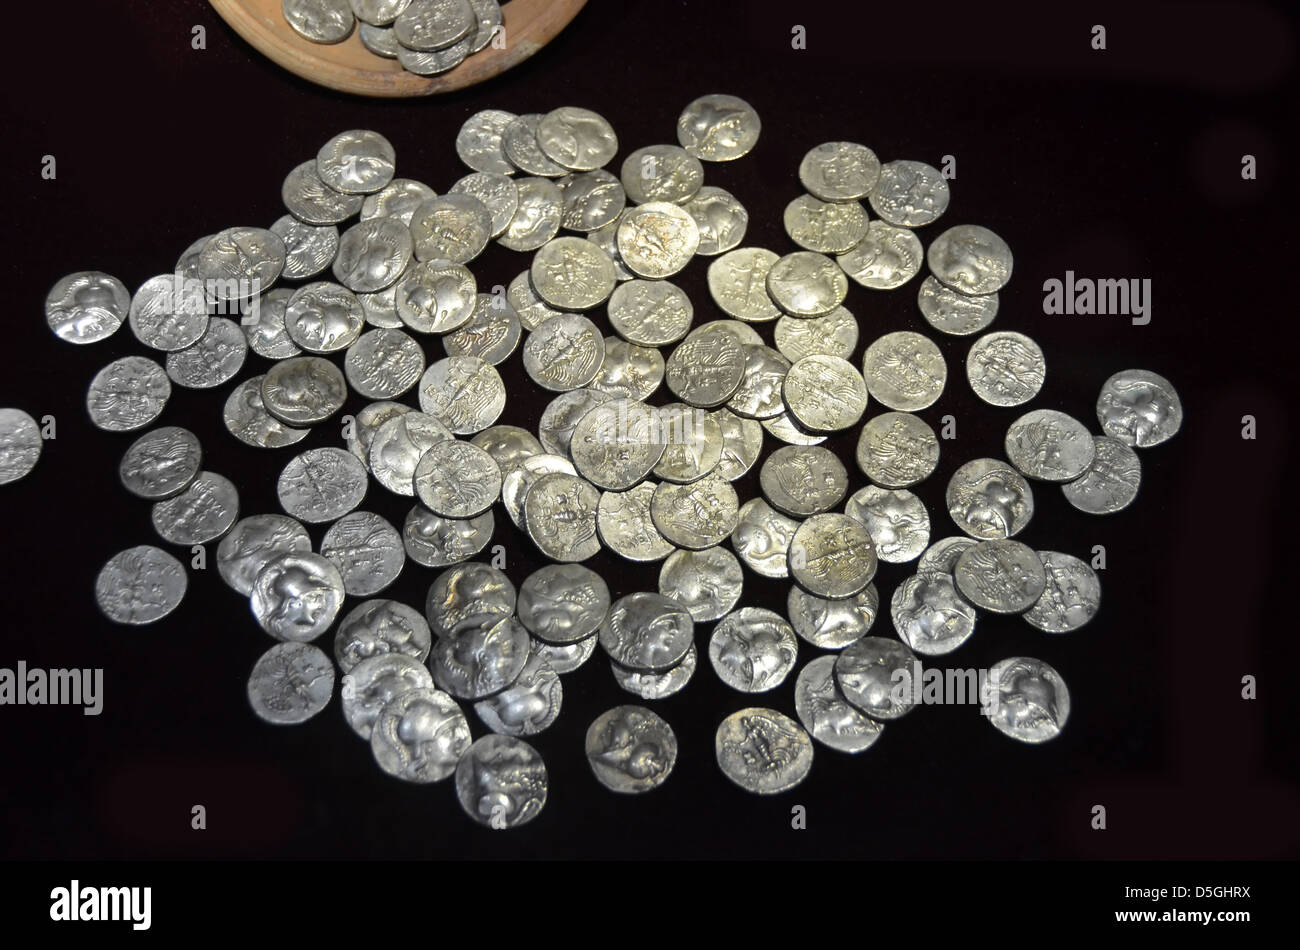 Treasure of ancient greek silver coins - Stock Image